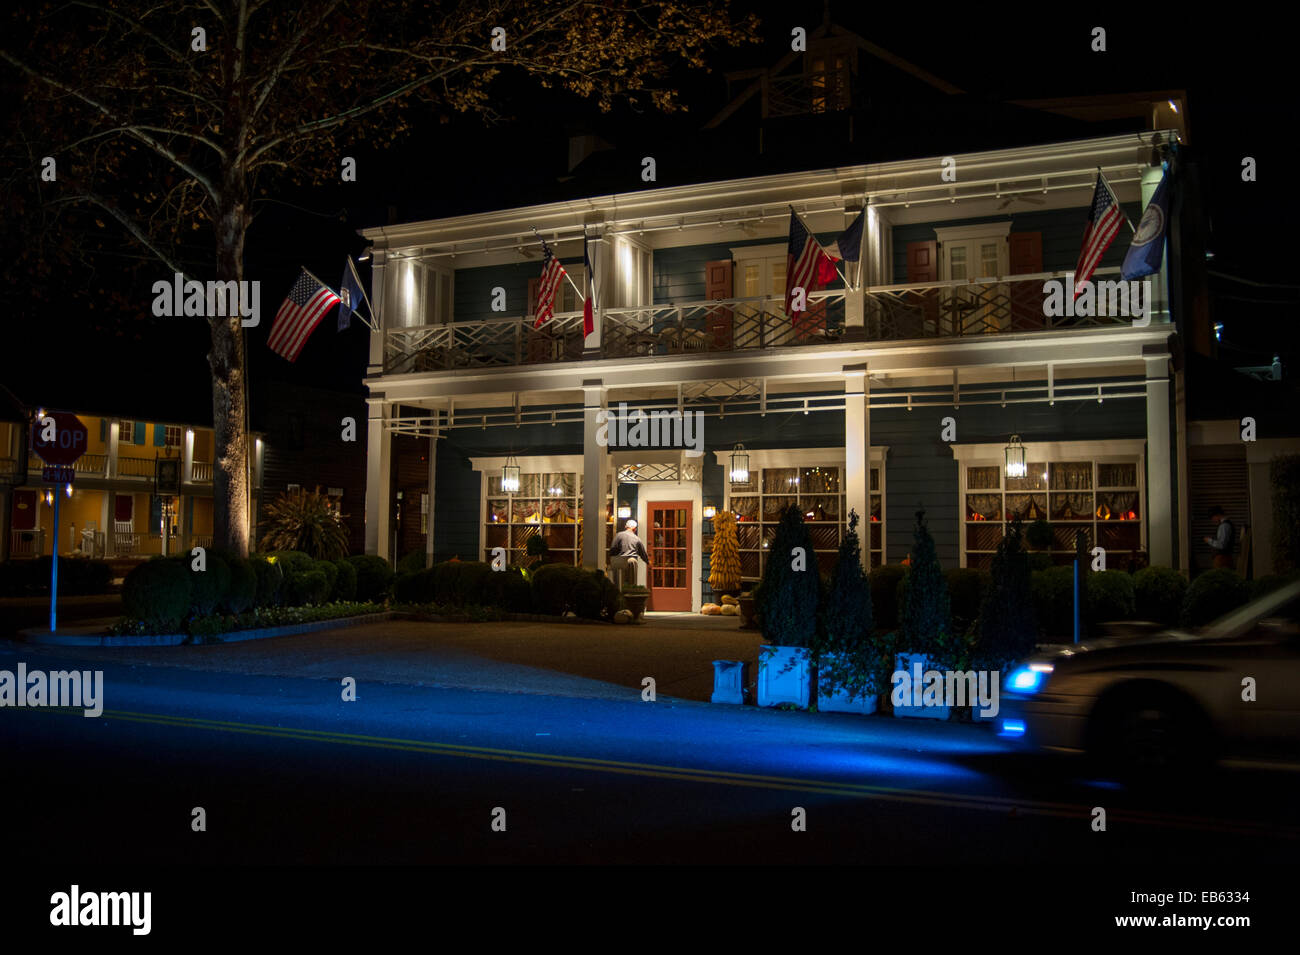 USA Virginia VA Washington Inn at Little Washington a Relais and Chateaux hotel property exterior at night - Stock Image